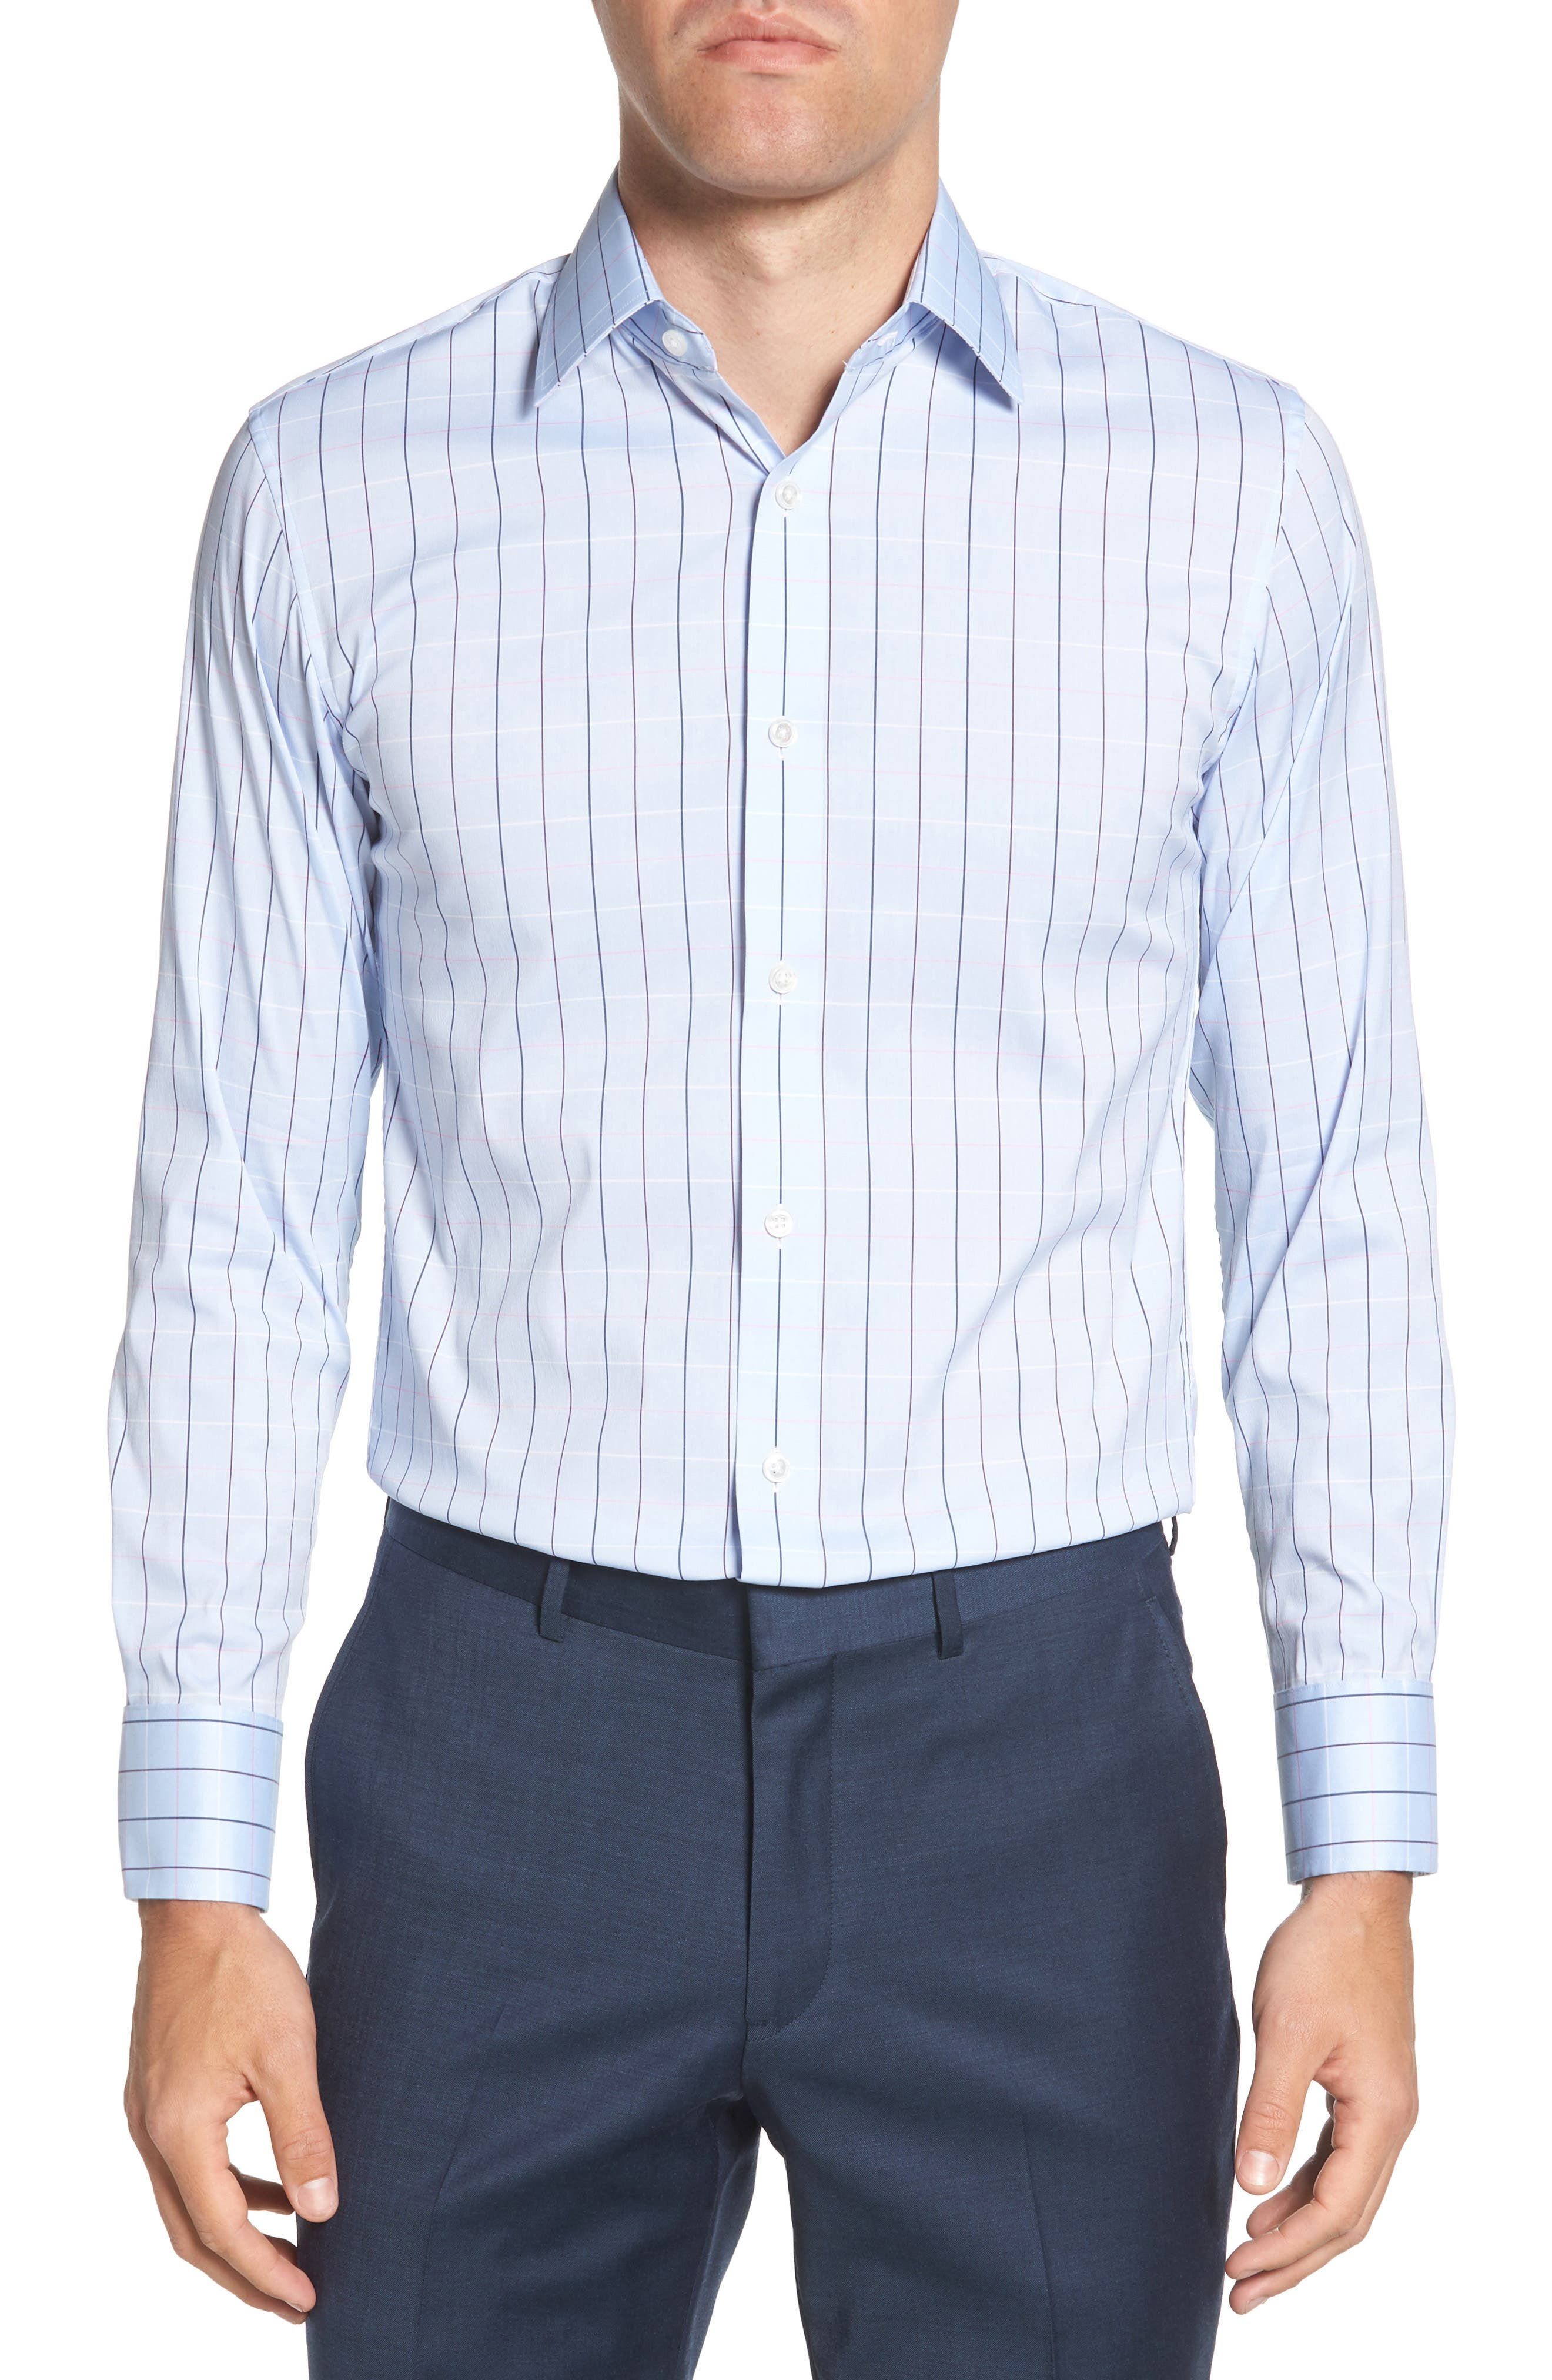 Jetsetter Slim Fit Stretch Check Dress Shirt,                         Main,                         color, Cannes Blue